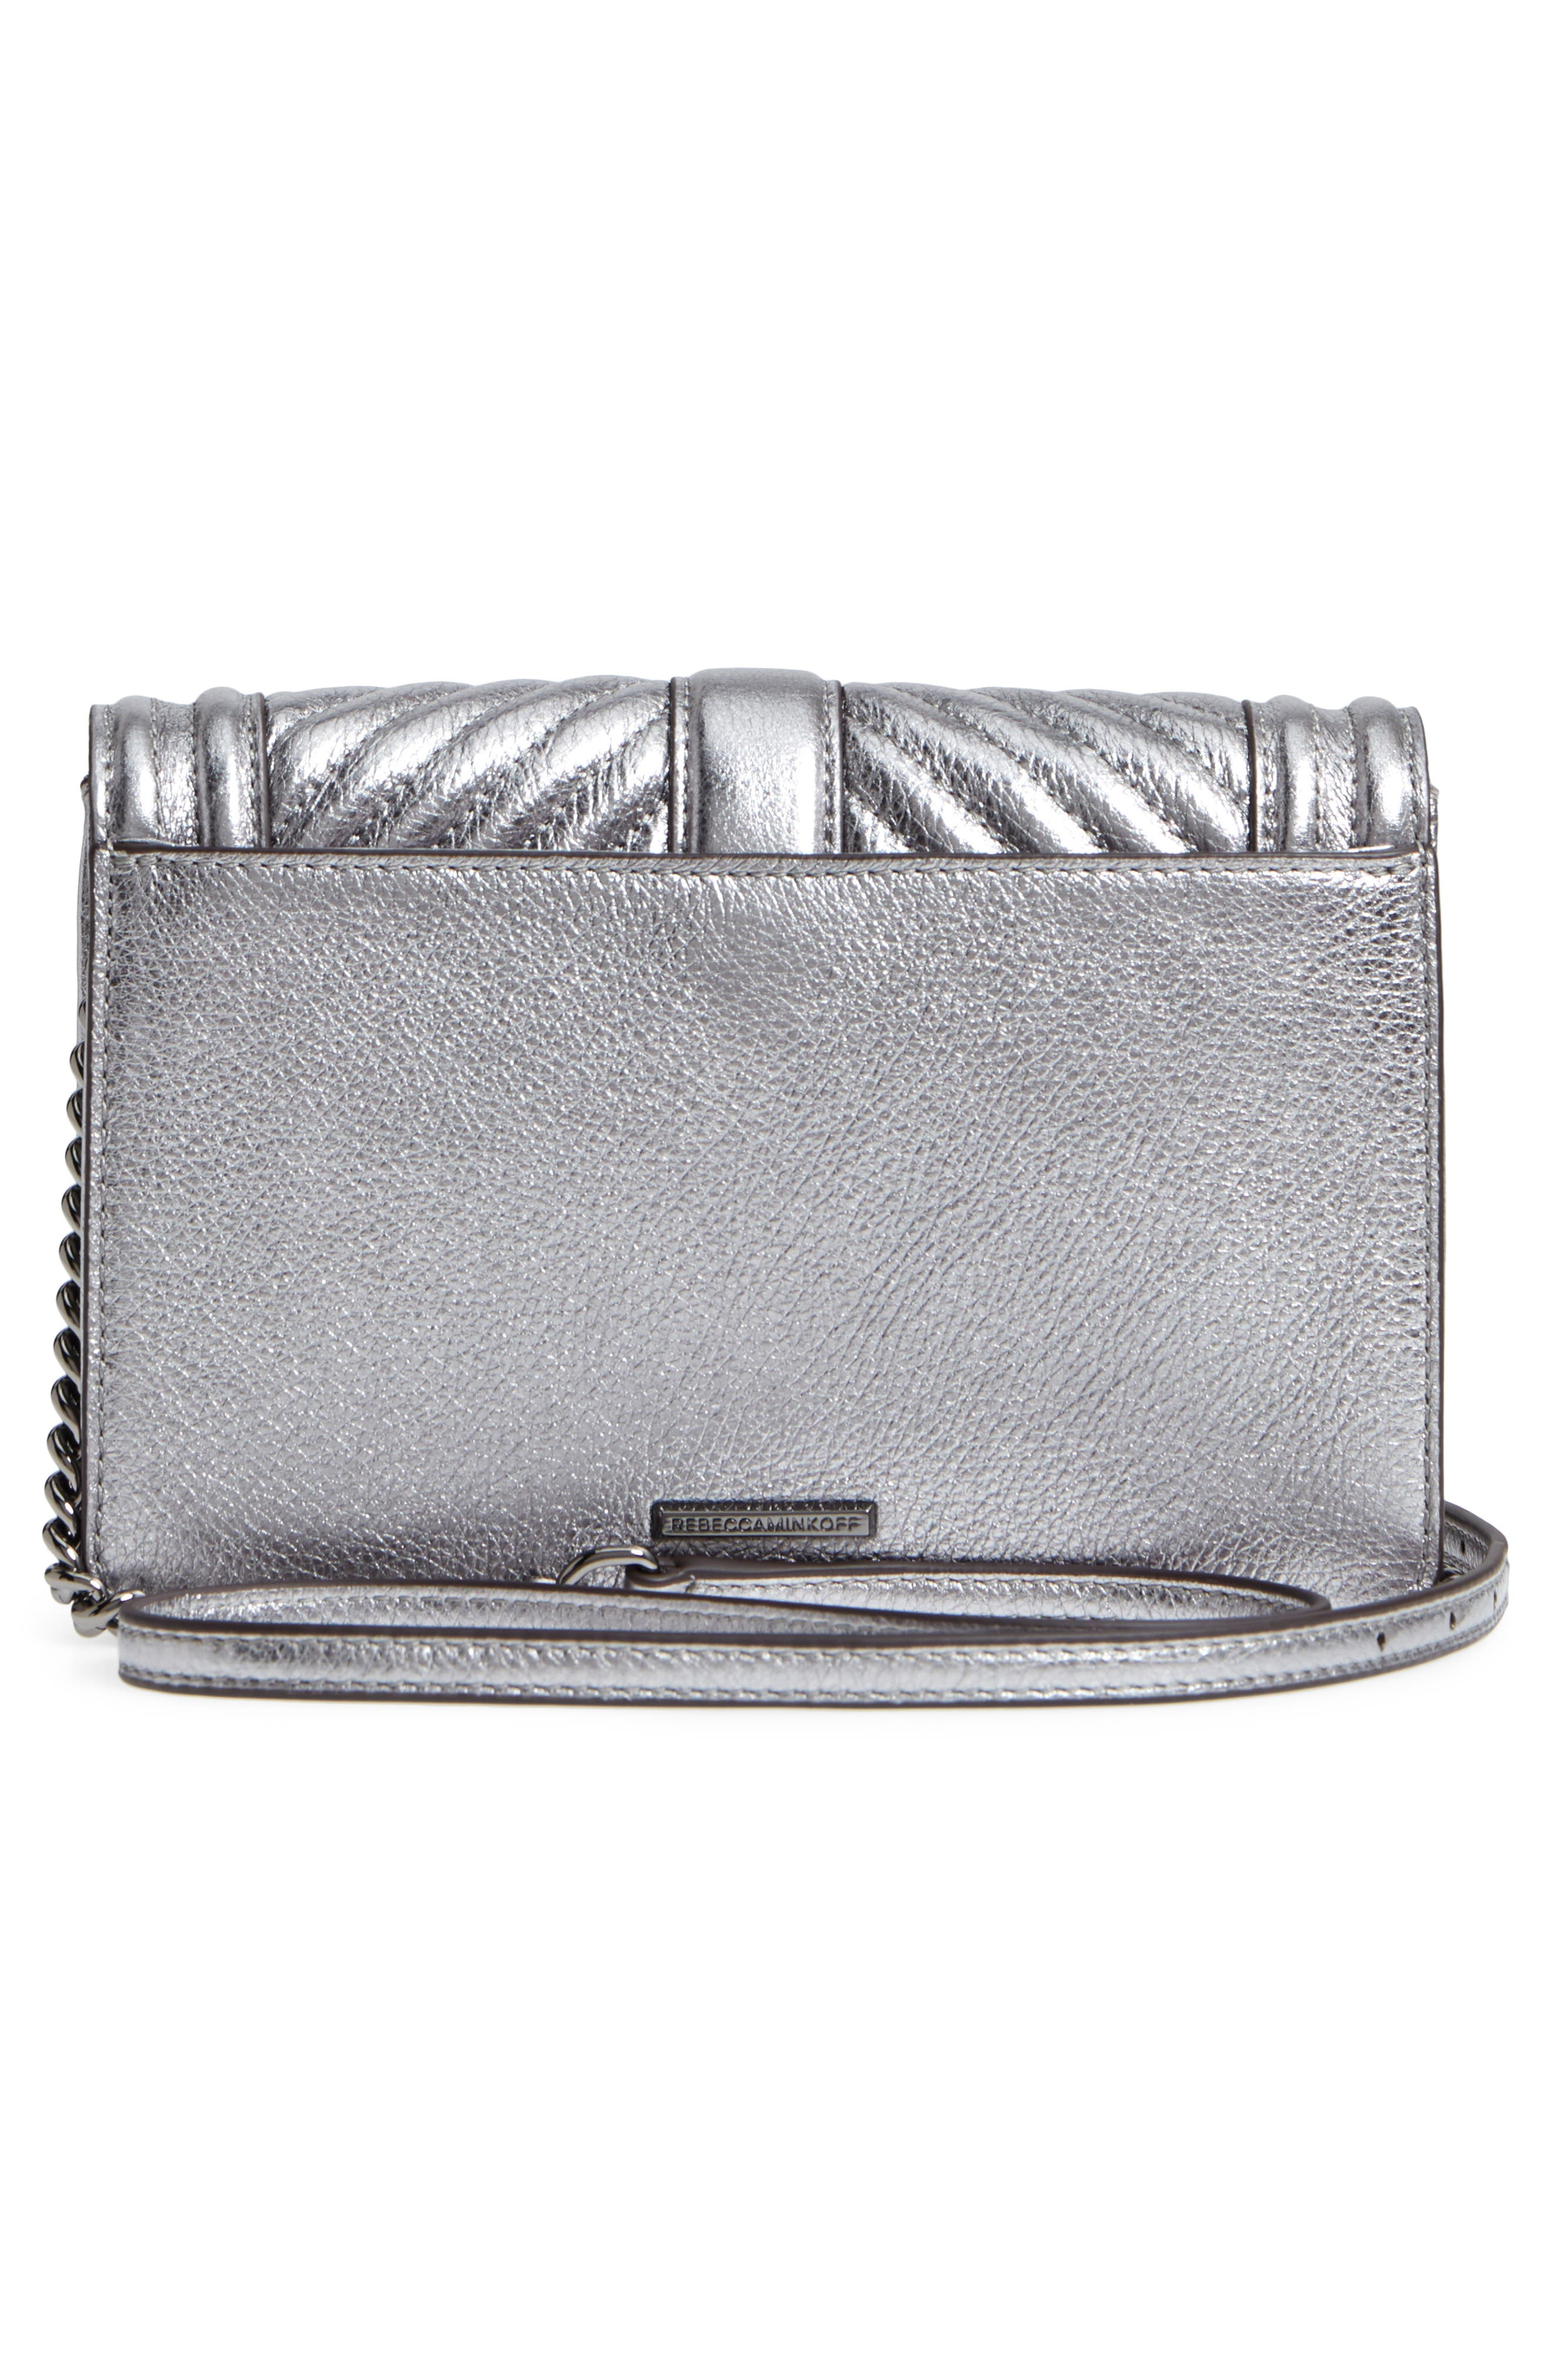 Small Love Metallic Leather Crossbody Bag,                             Alternate thumbnail 3, color,                             Anthracite